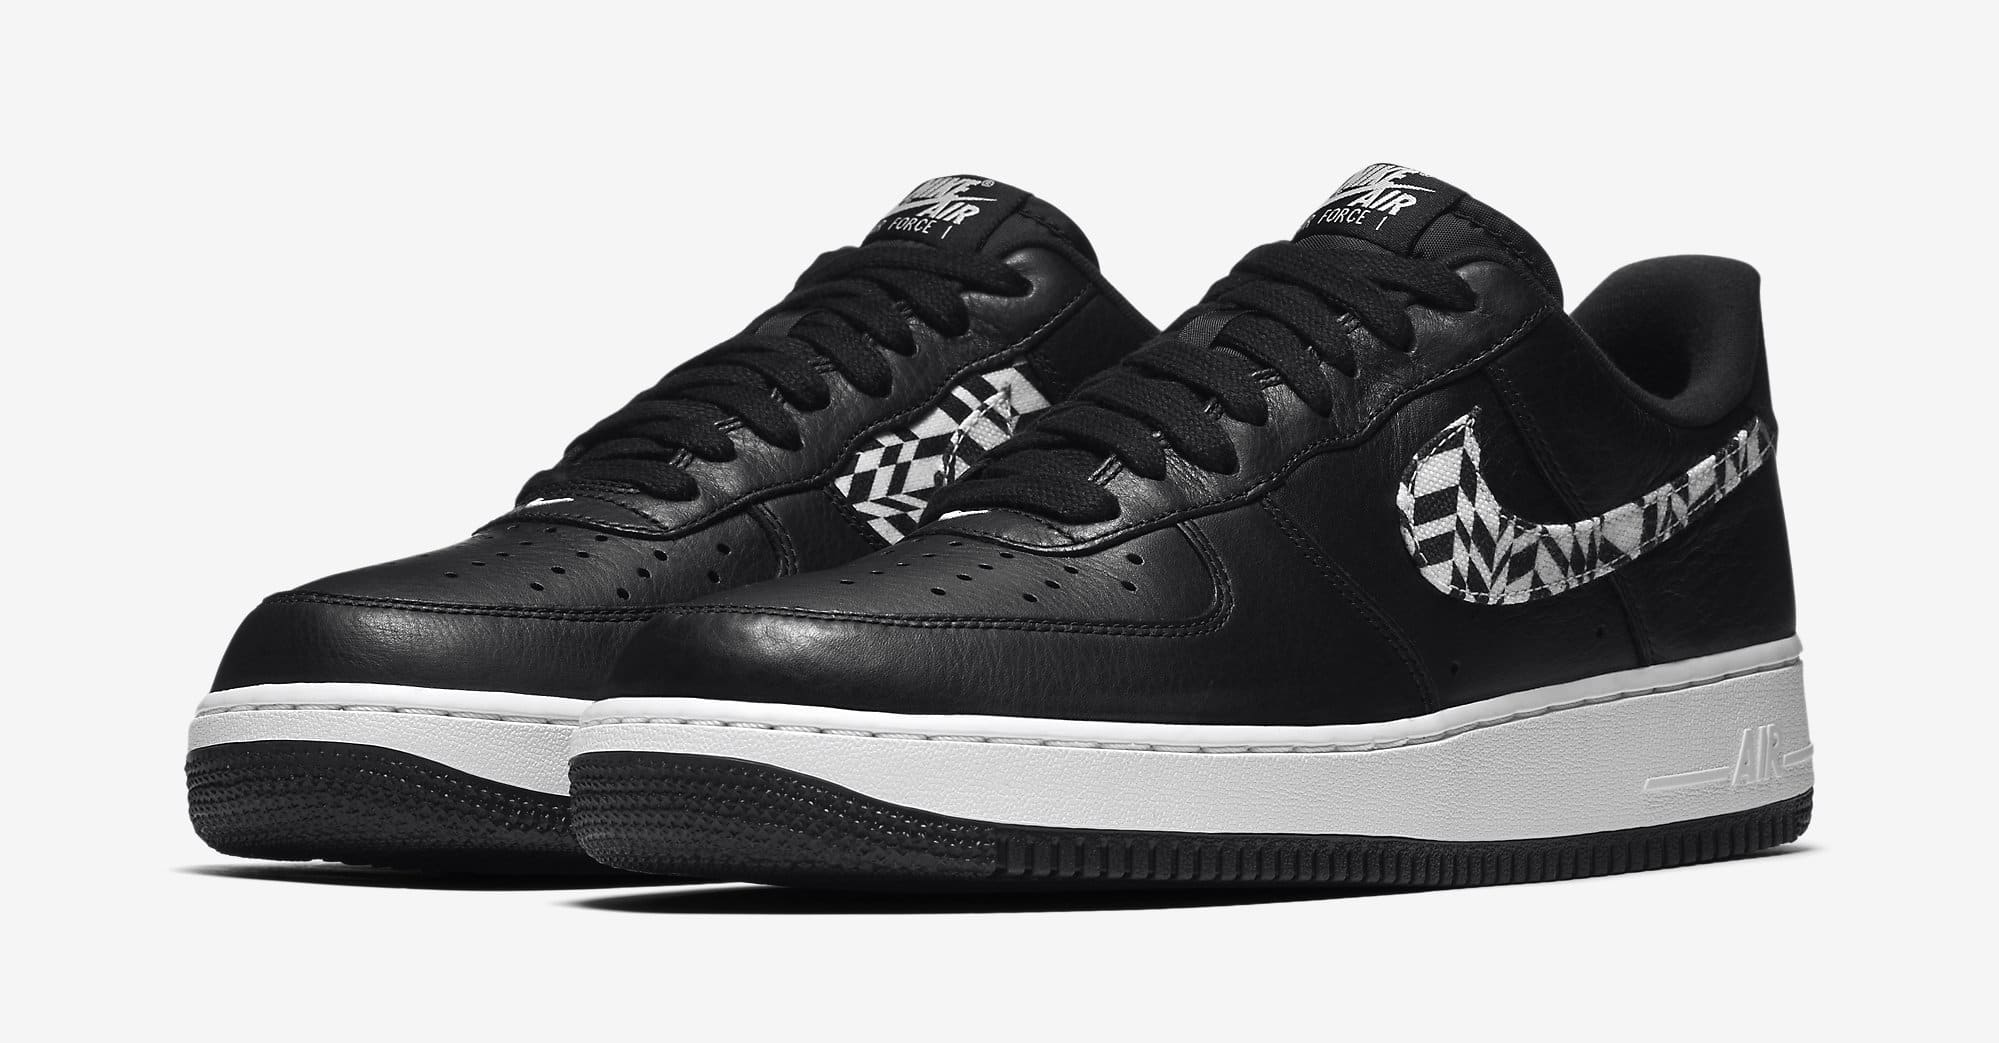 Nike Air Force 1 Low AQ4131-001 (Pair)